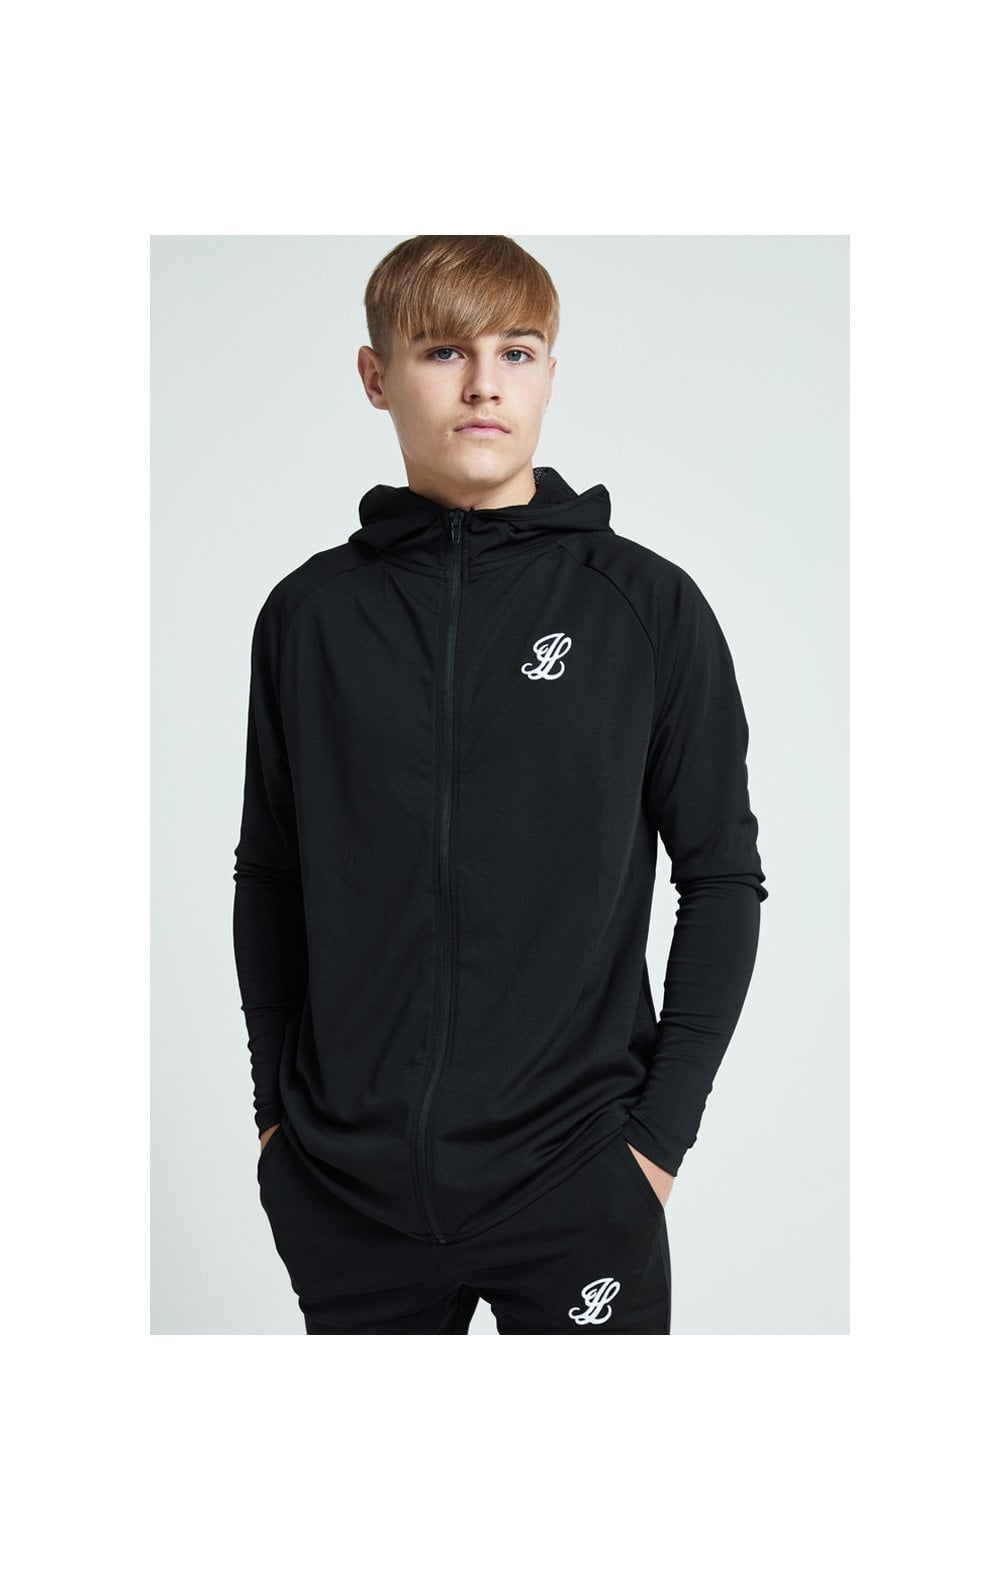 Illusive London Core Athlete Hoodie - Black